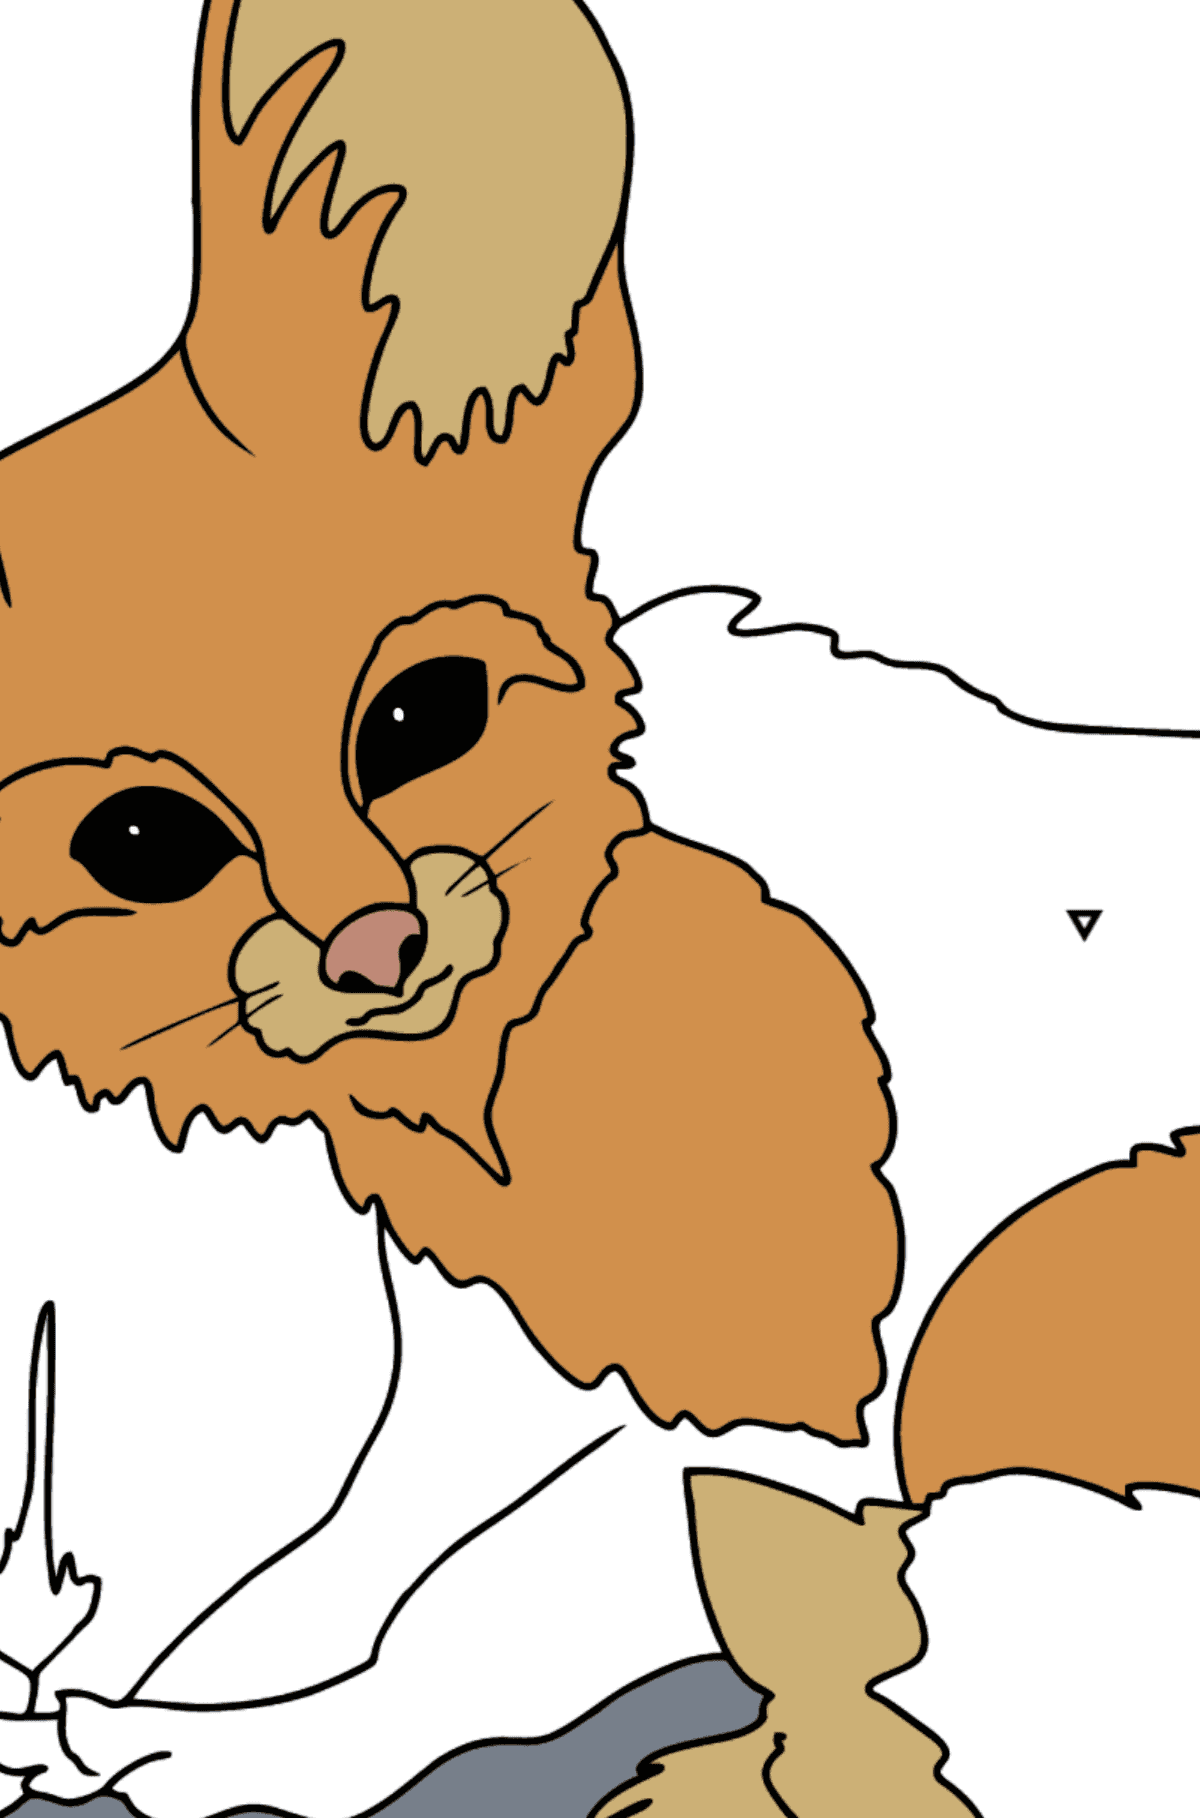 Coloring Page - A Fennec Fox or a Tiny Fox - Coloring by Symbols for Kids